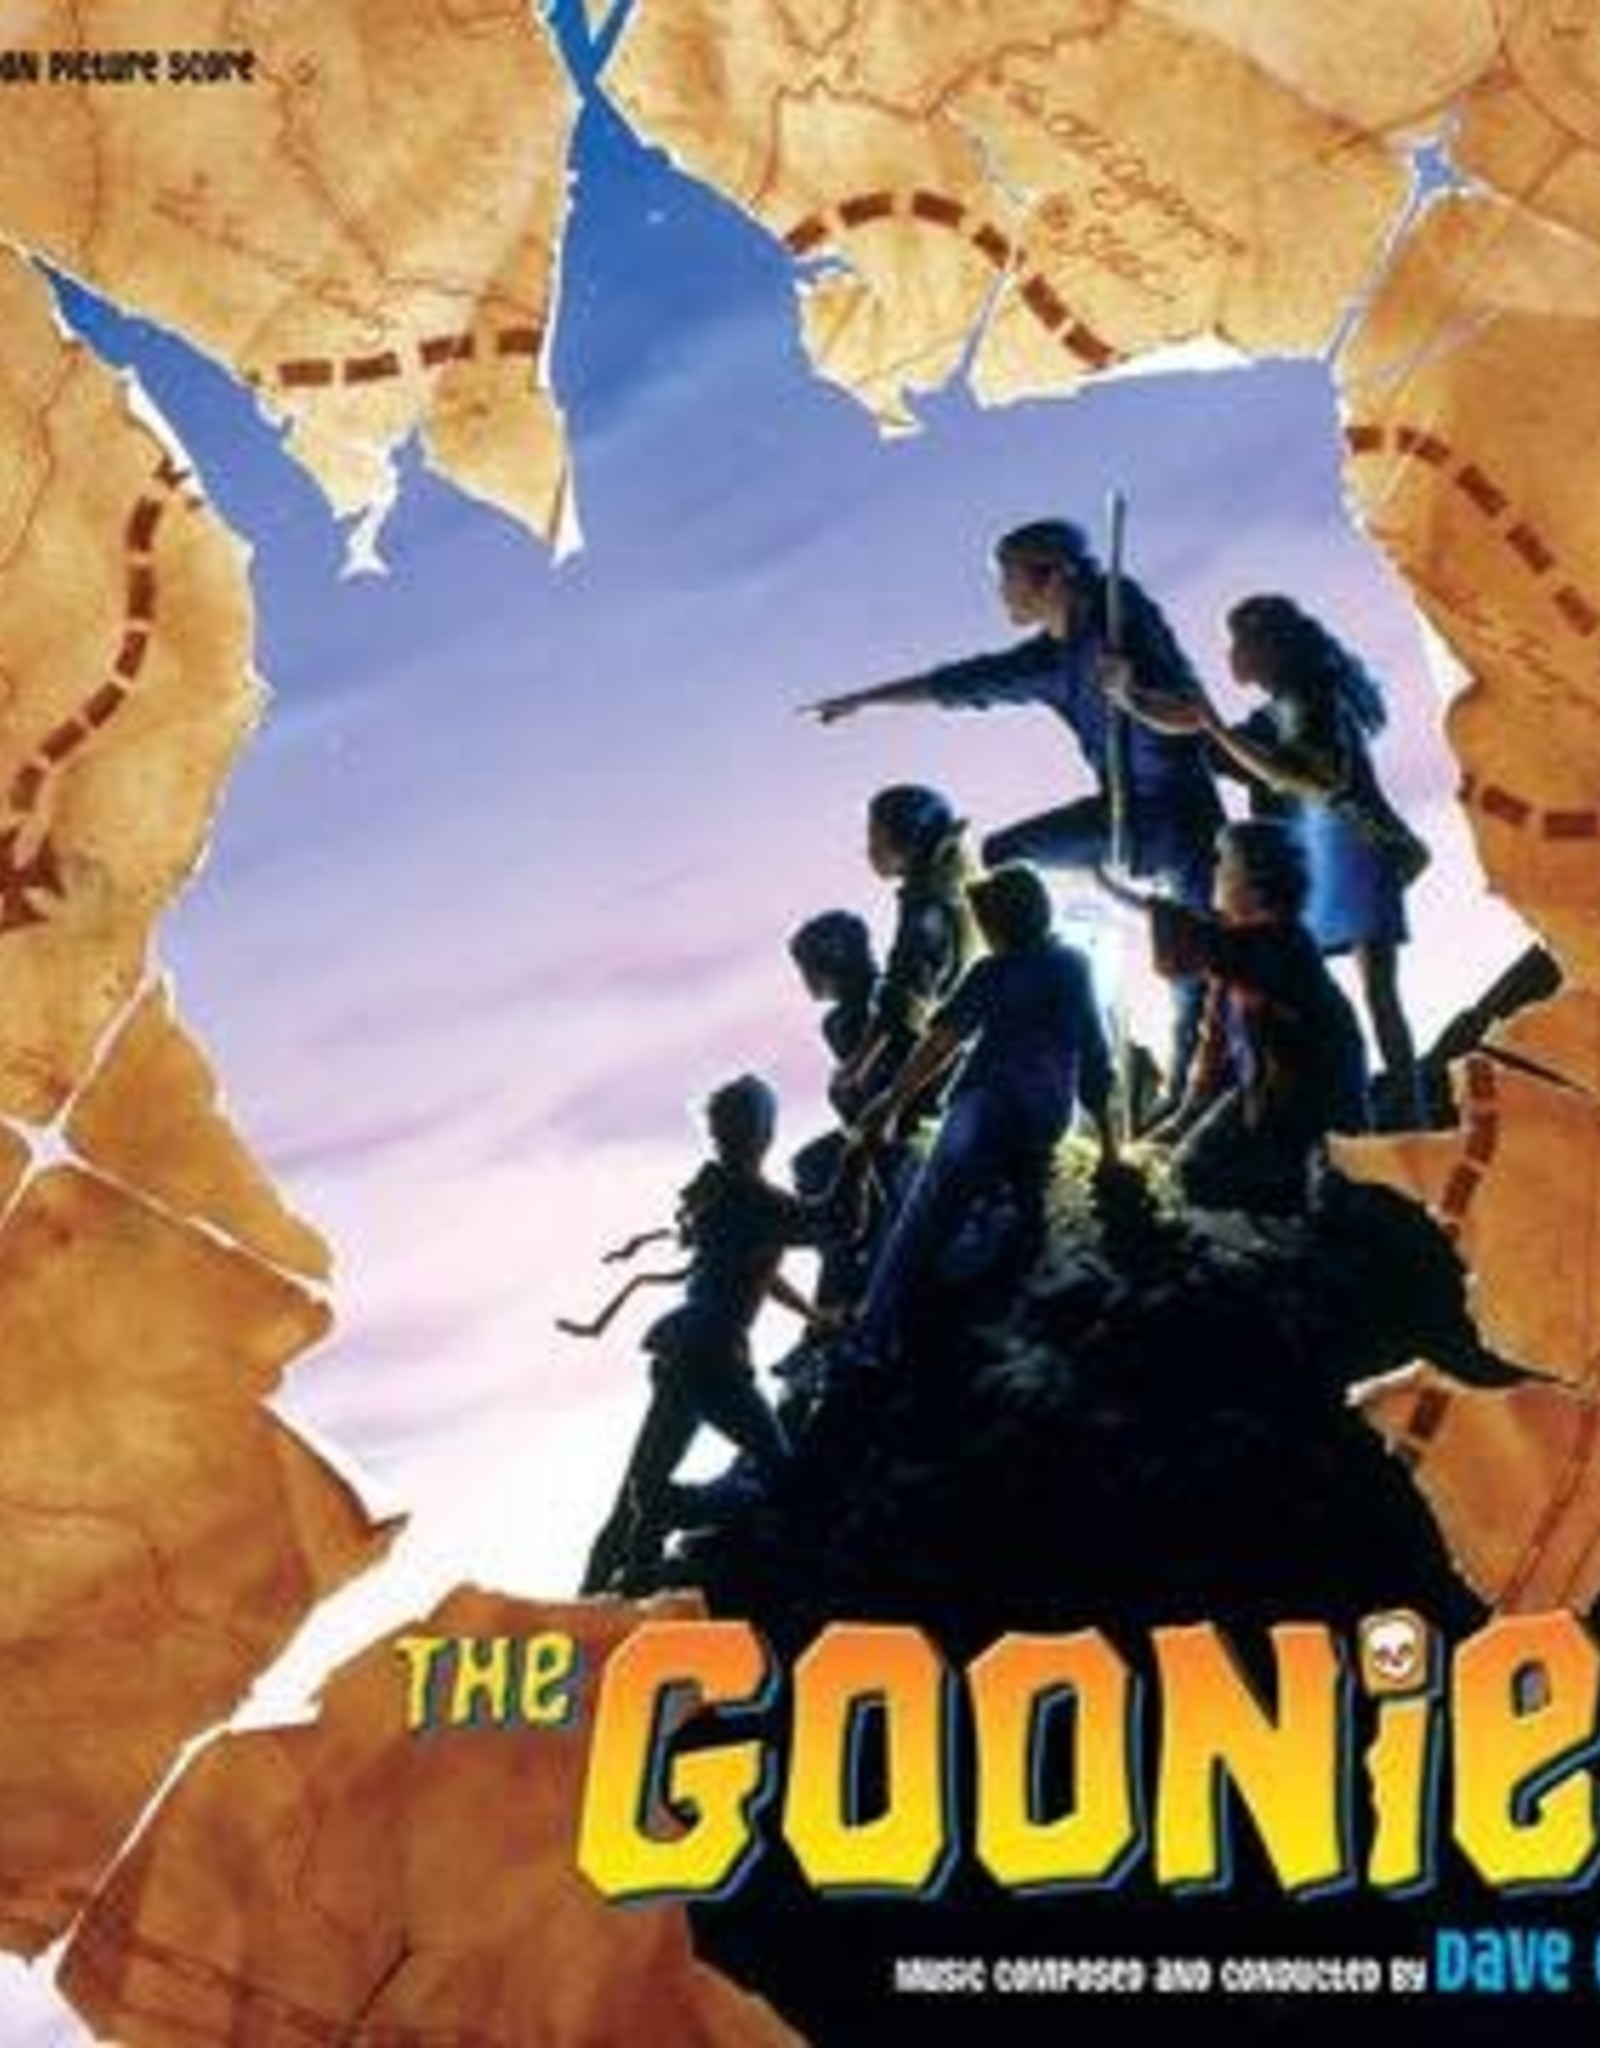 The Goonies - Goonies Ost (One-Eyed Willie Picture Disc) (RSD 6/21)